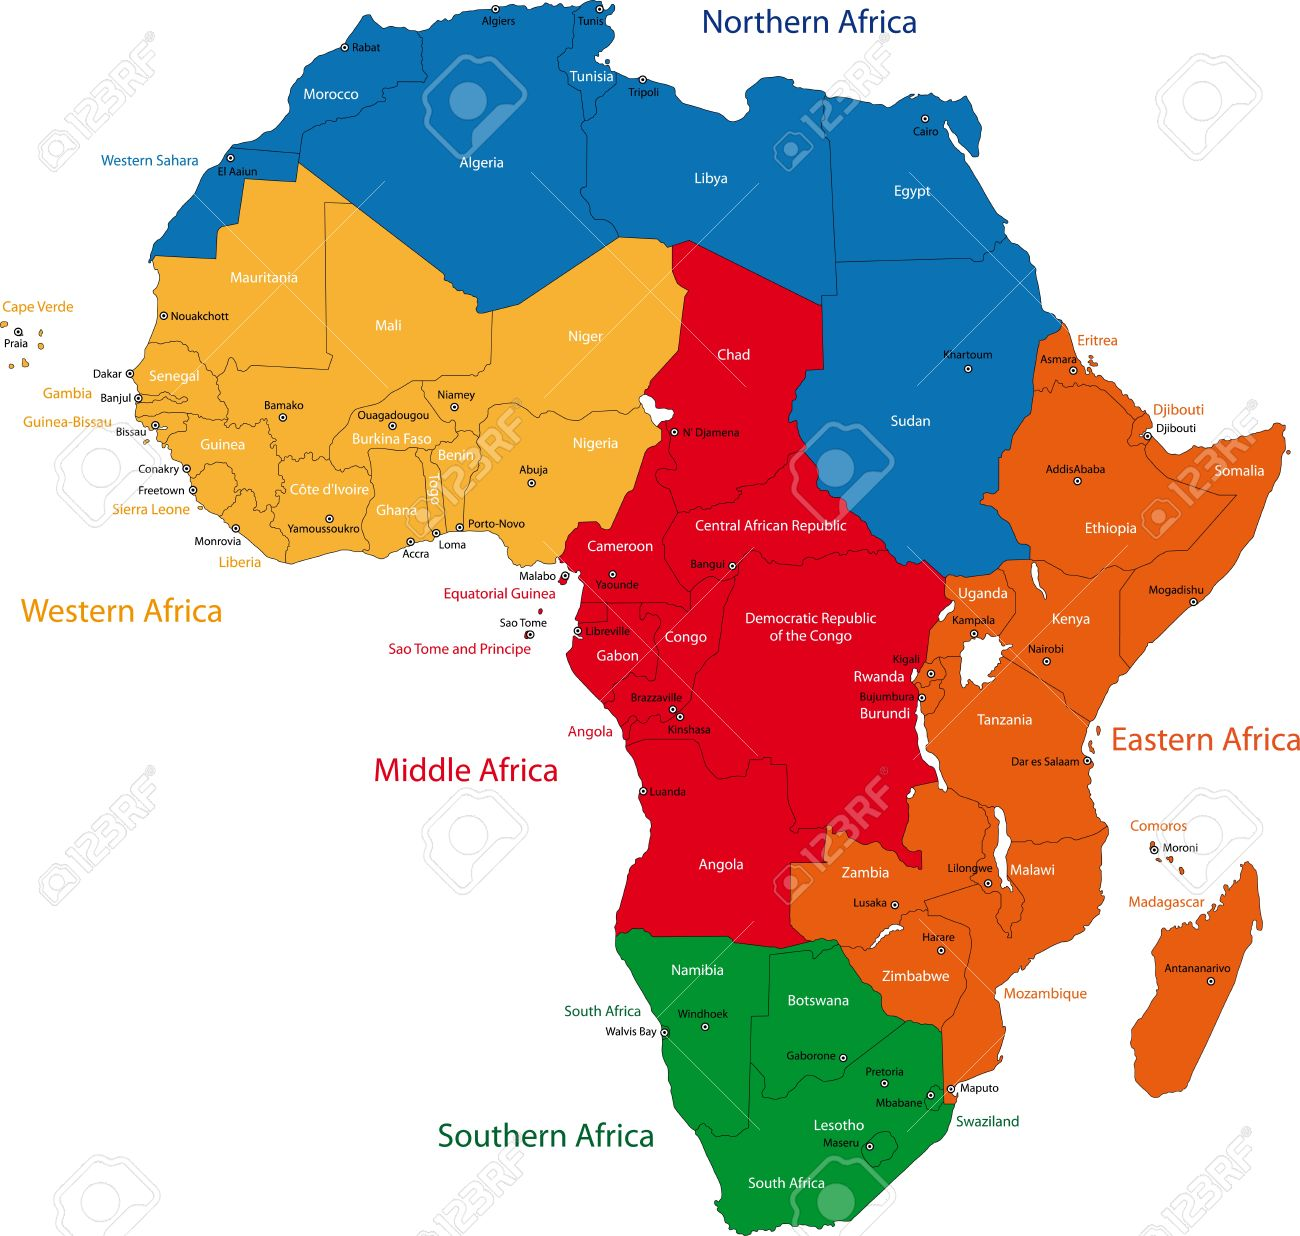 Colorful Regions Of Africa With Countries And Capital Cities - Regions of africa